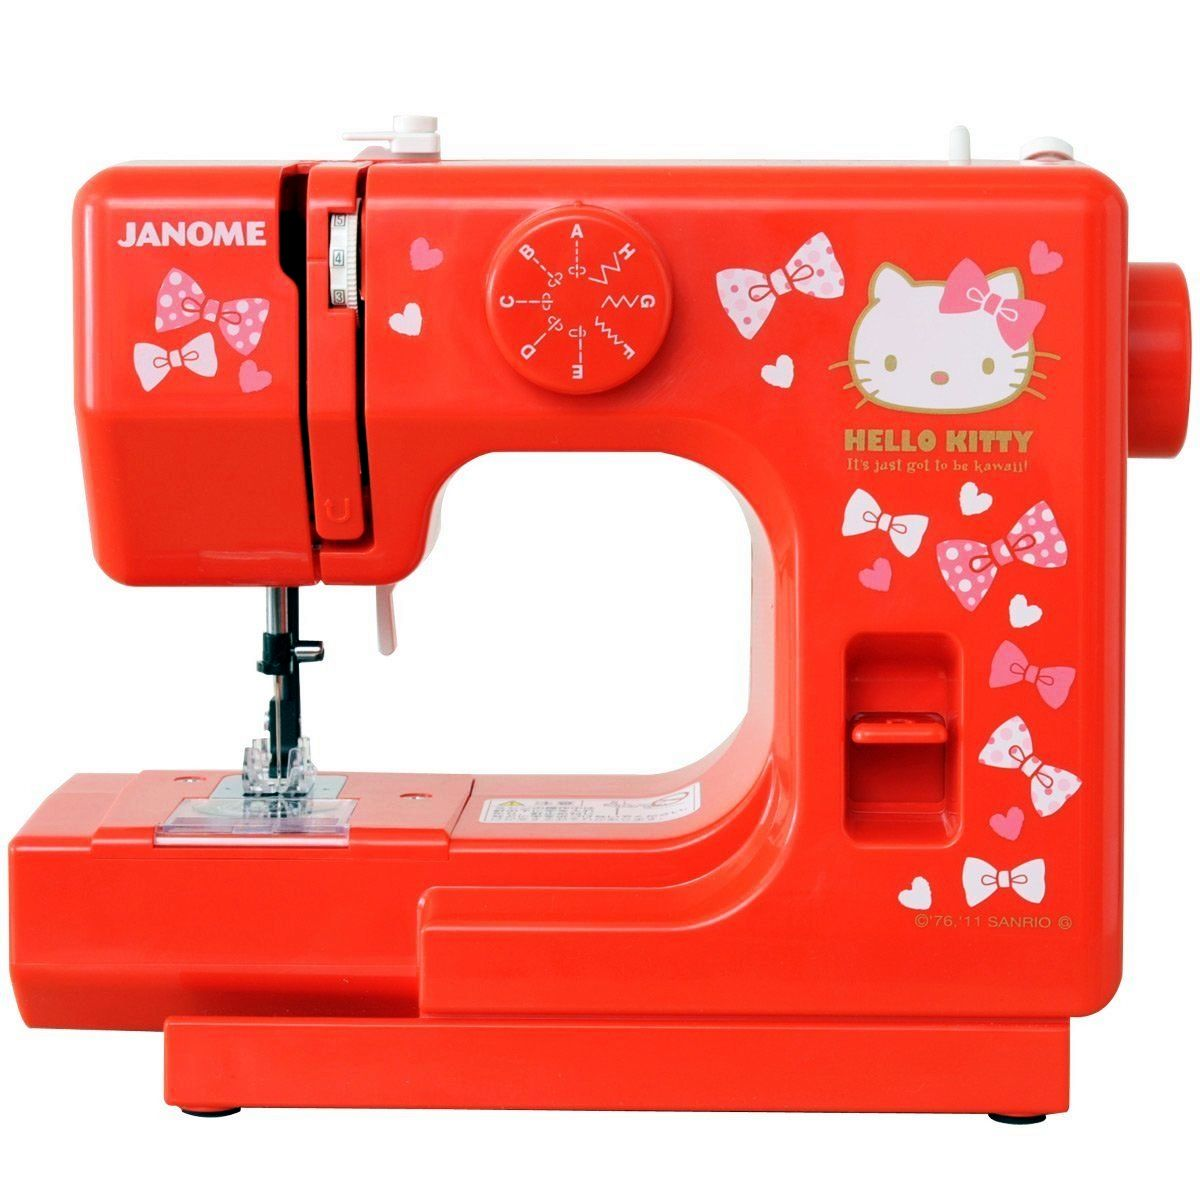 From Japan. Janome, Sew mini Hello Kitty Sewing Machine in